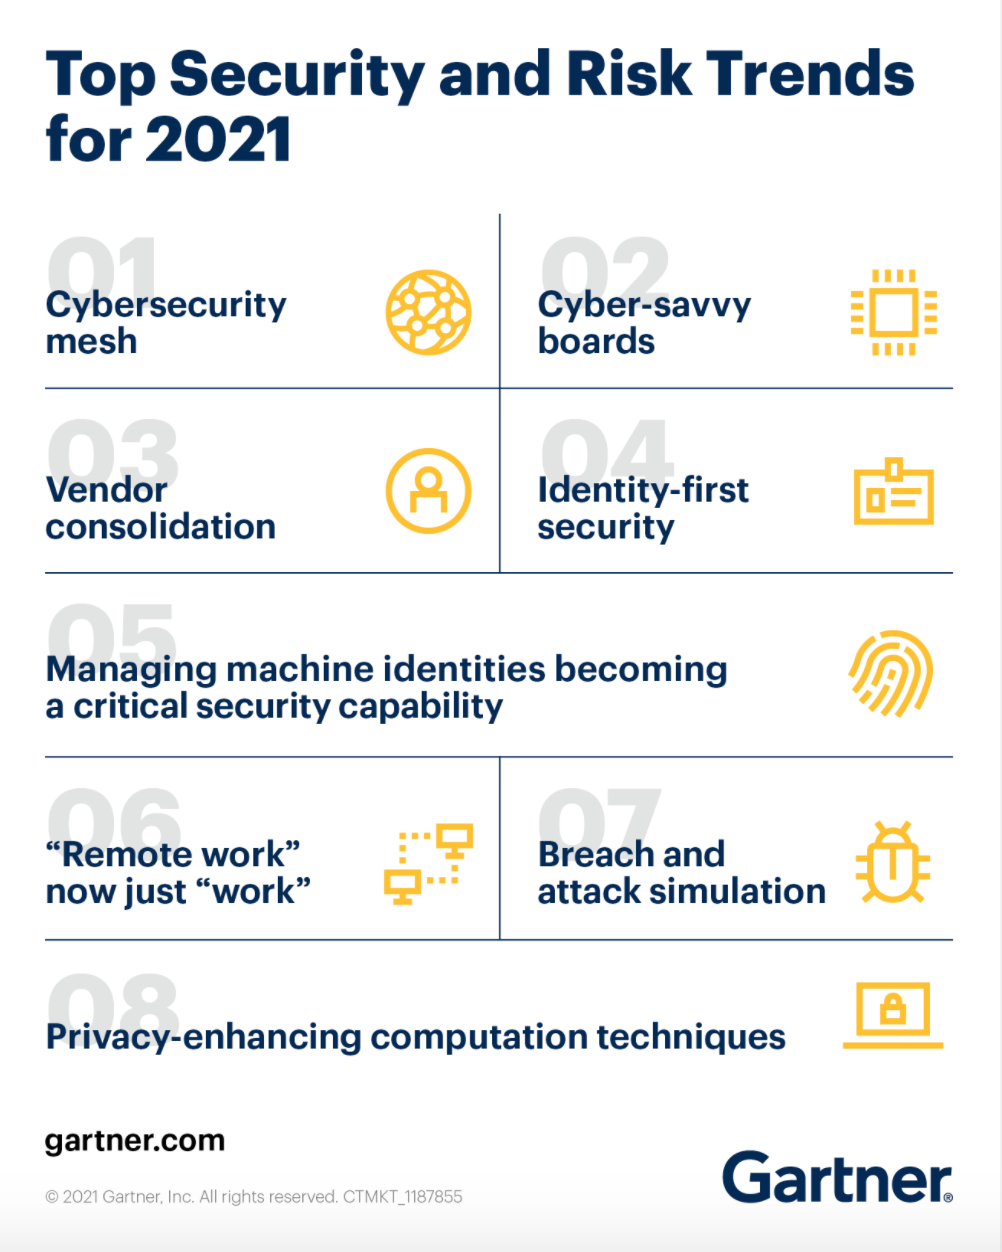 Top Security and Risk Trends